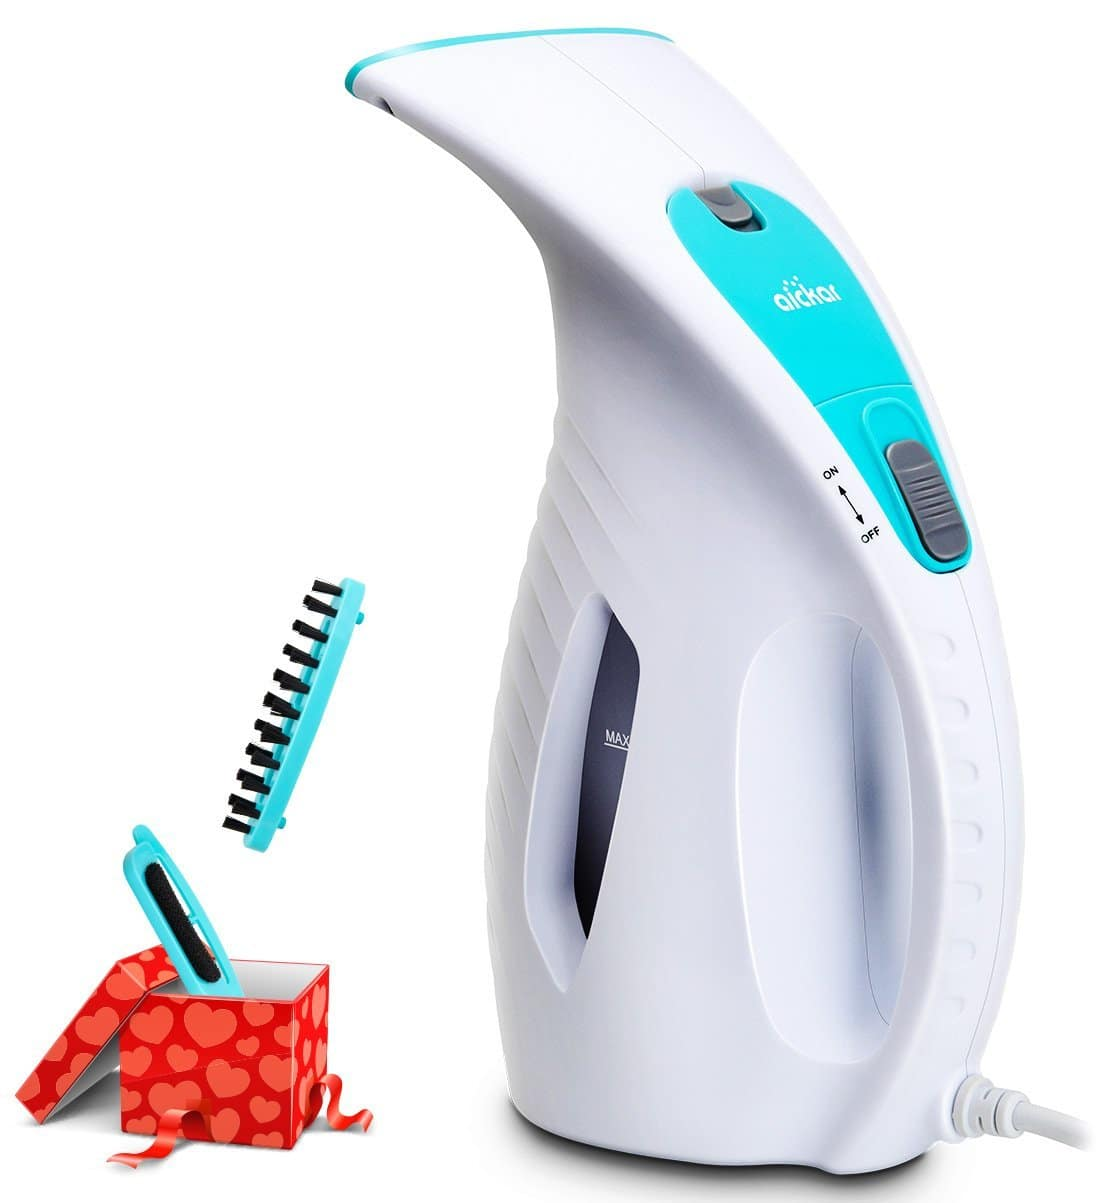 Aickar 180ml Portable Garment Steamer, 800W Powerful Clothes Steamer, ETL Approved Handheld Fabric Steamer, Travel Steamers for Clothes and Curtains - White $12.48